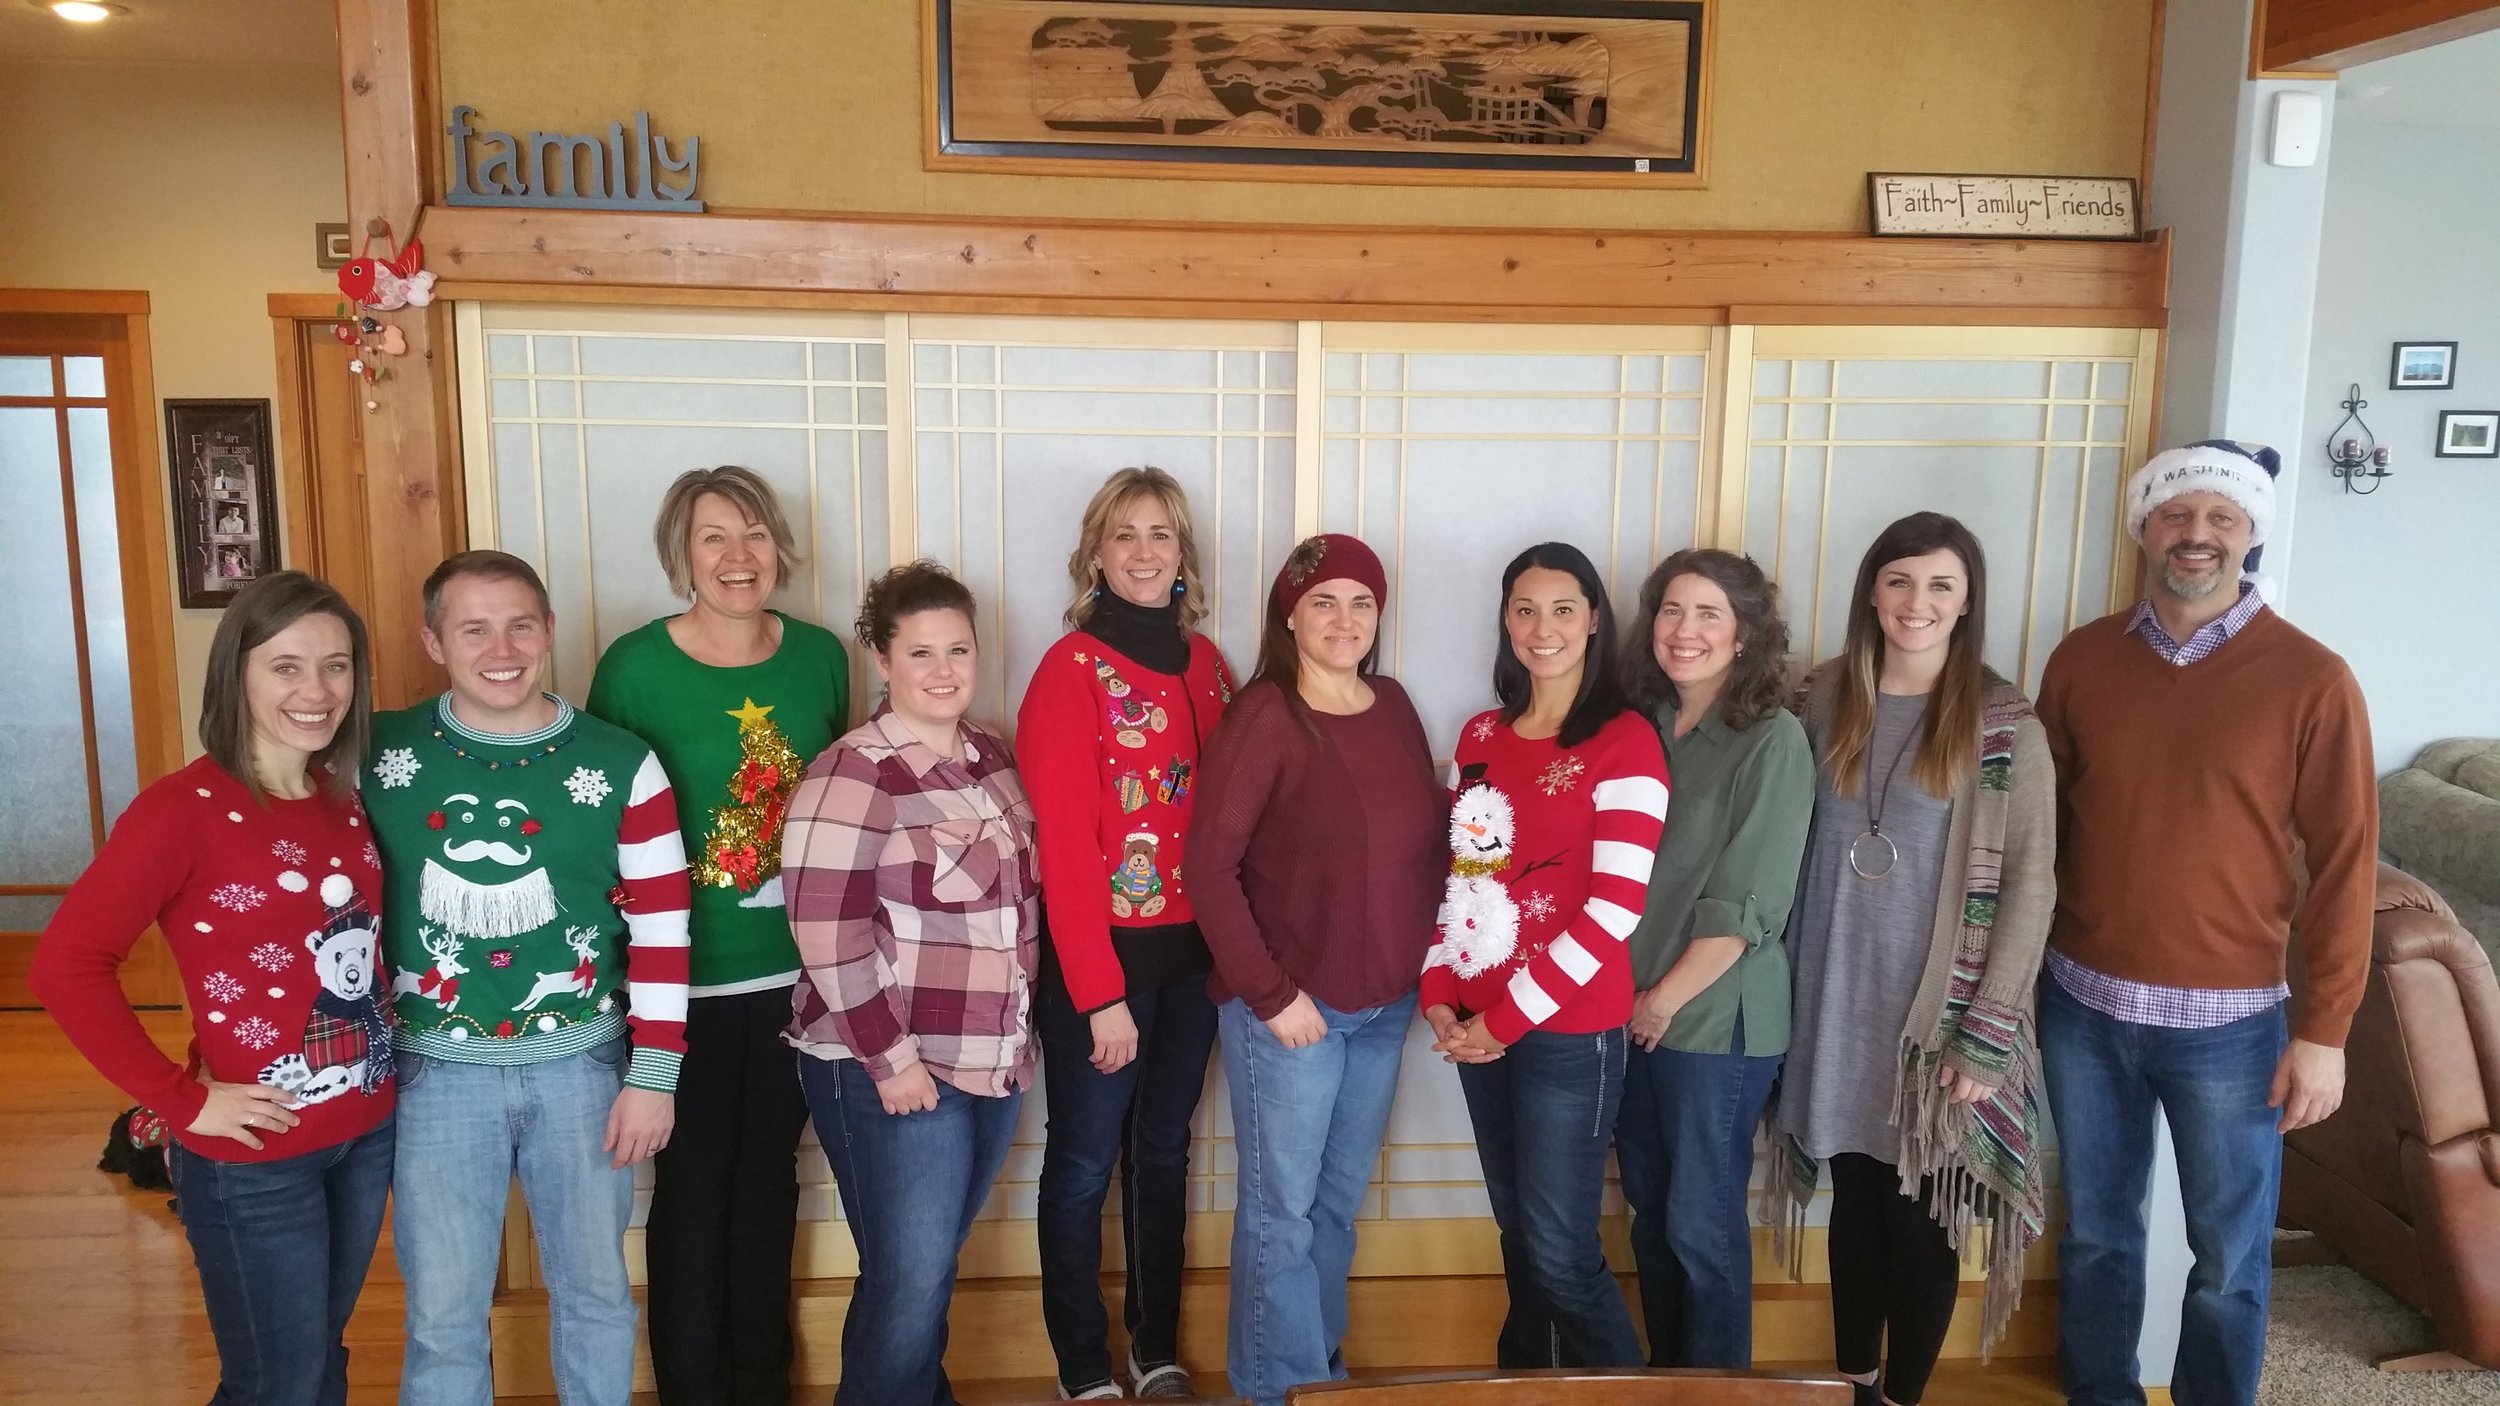 Our Ugly Sweater Christmas Brunch-2016!